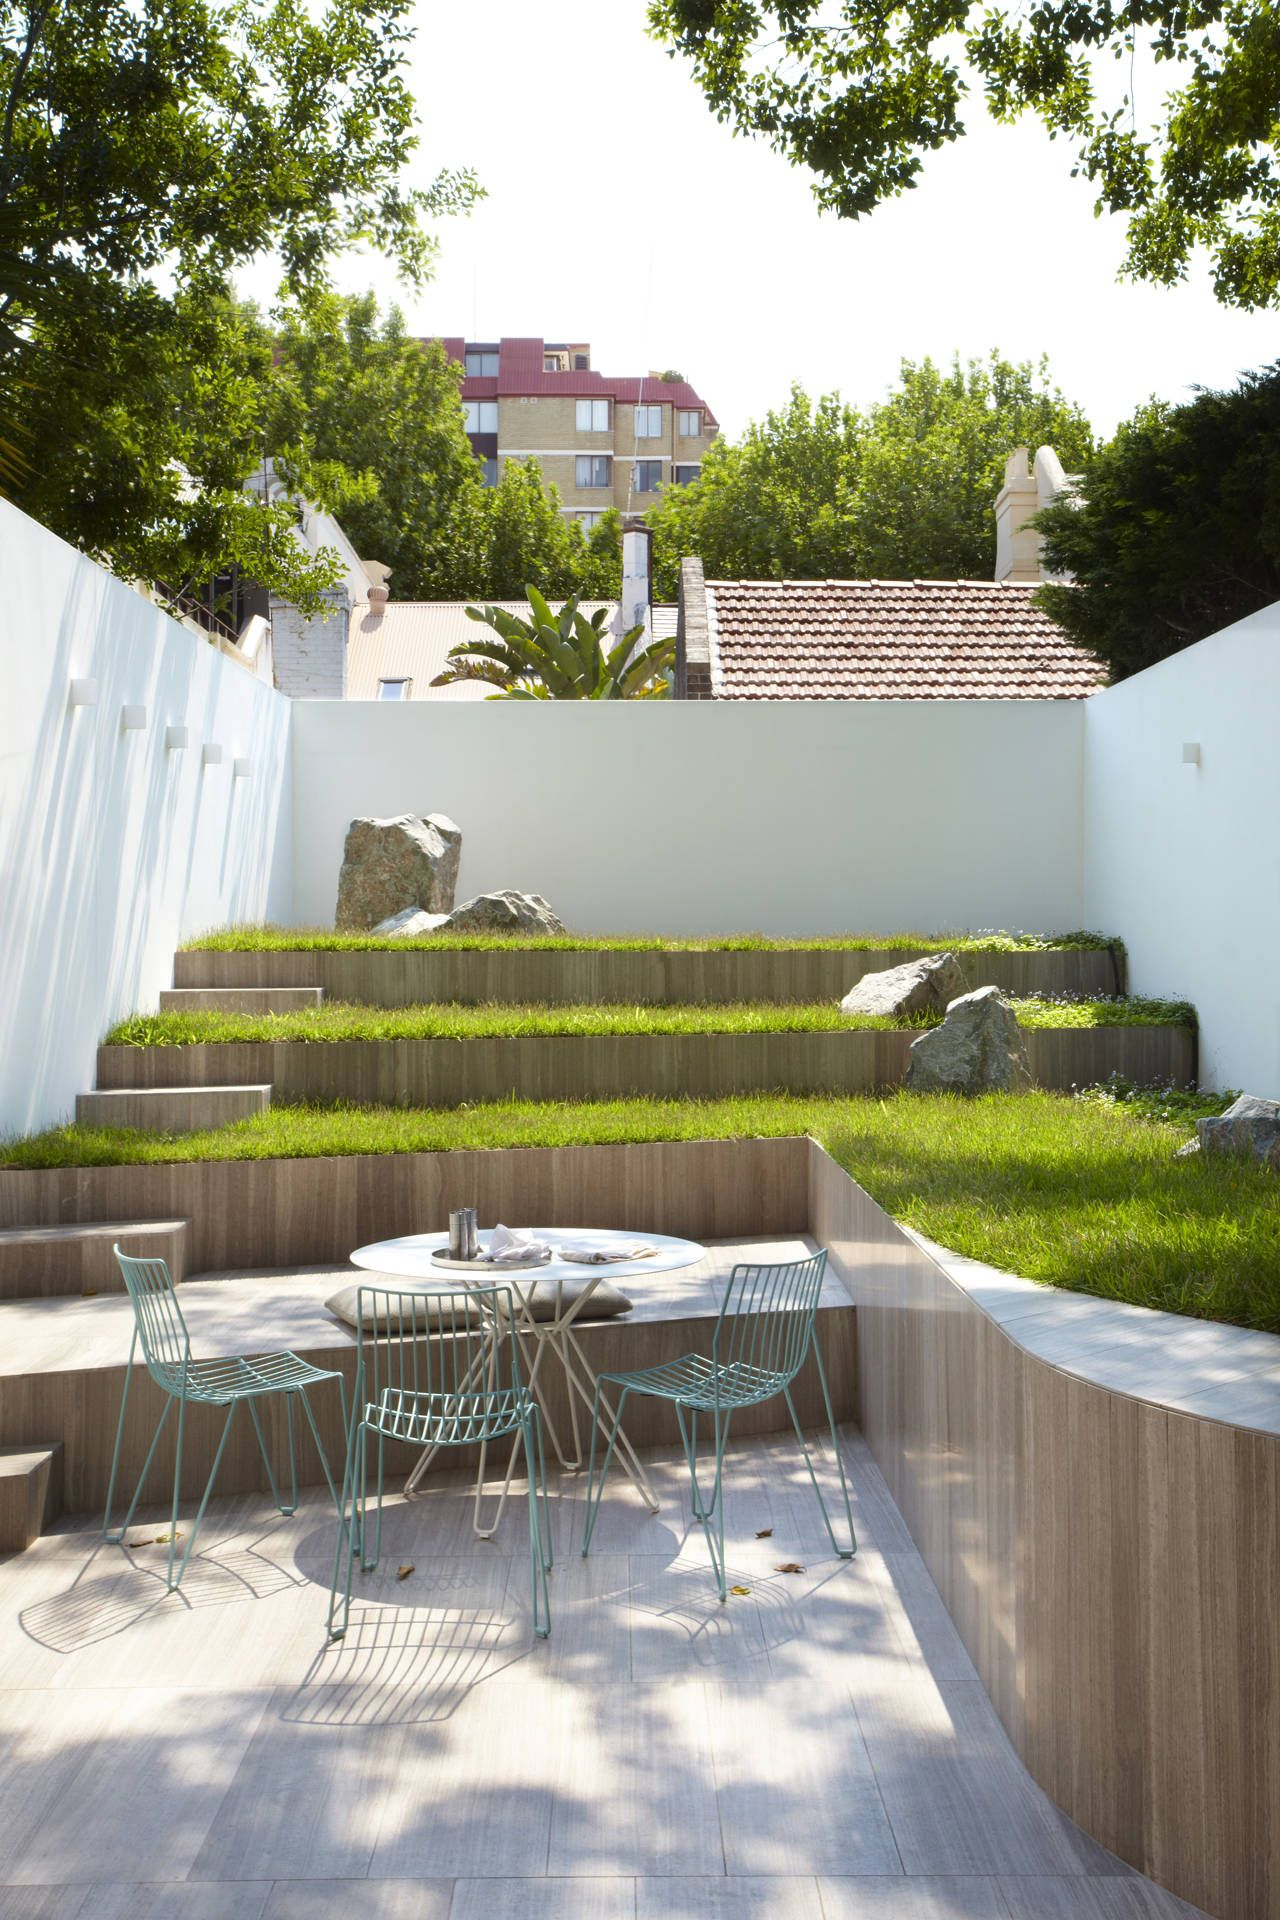 Terraced Gardens - How To Take Beauty To The Next Level